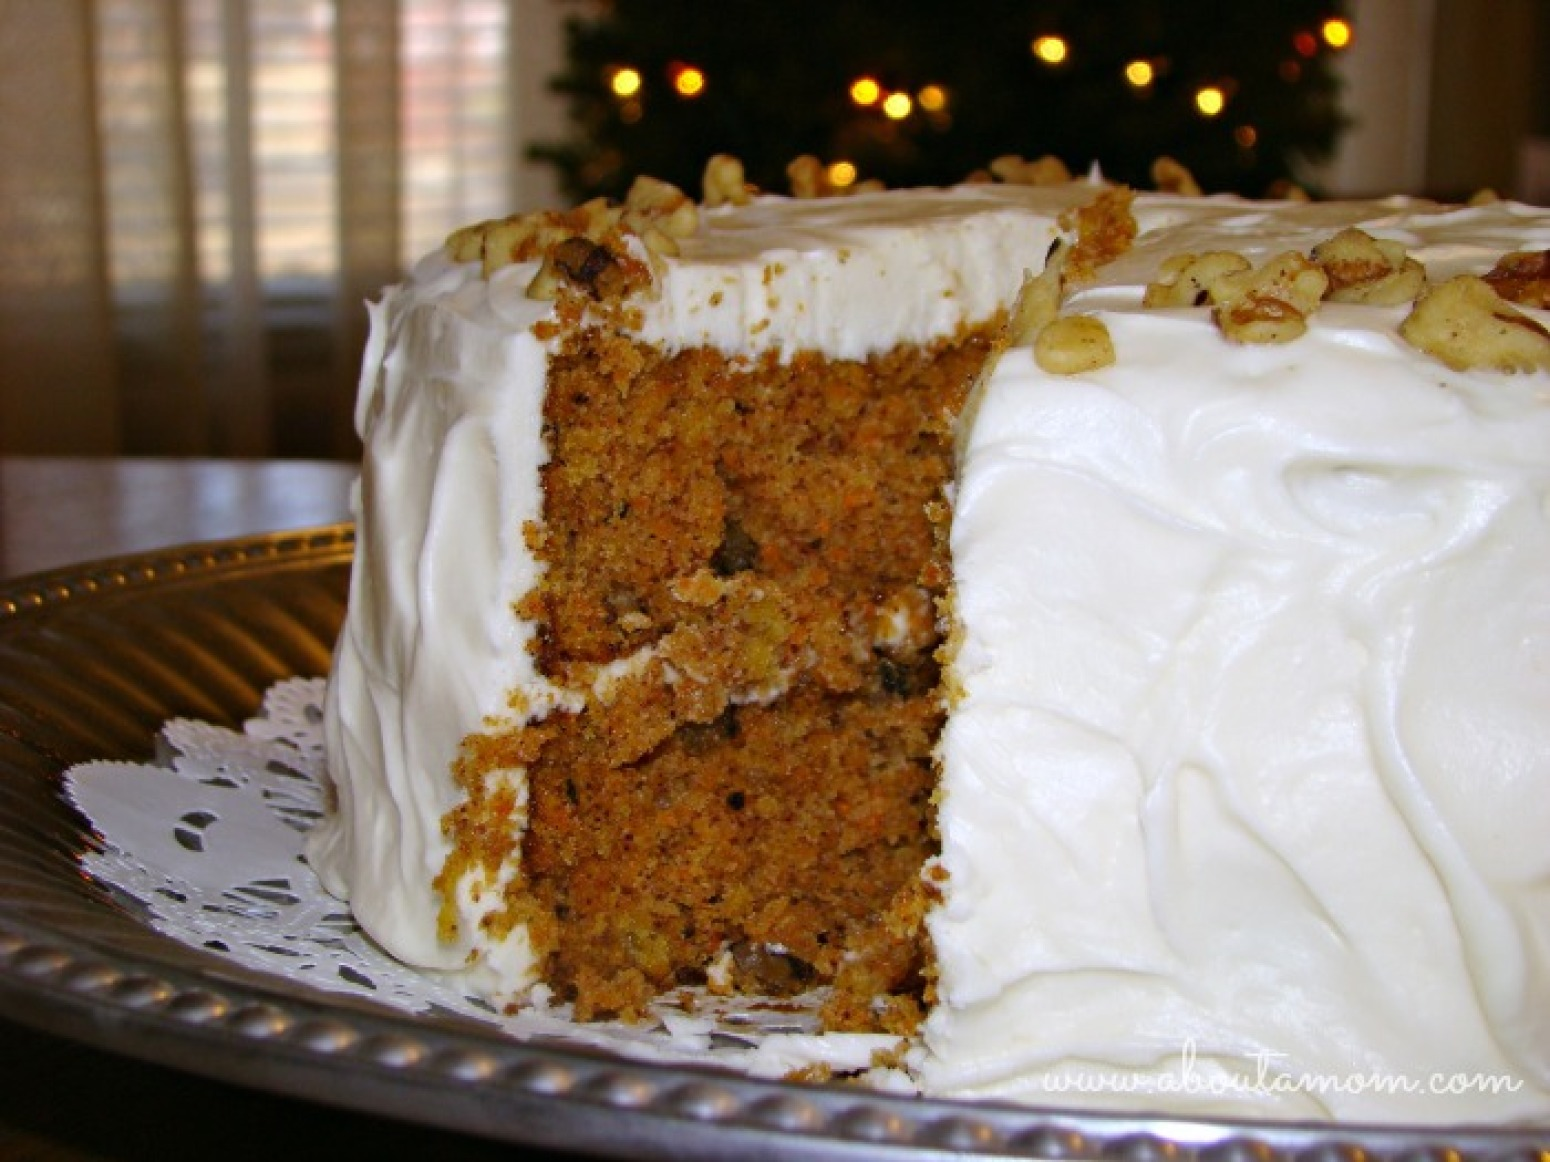 Carrot and Pineapple Cake Recipe 2 | Just A Pinch Recipes